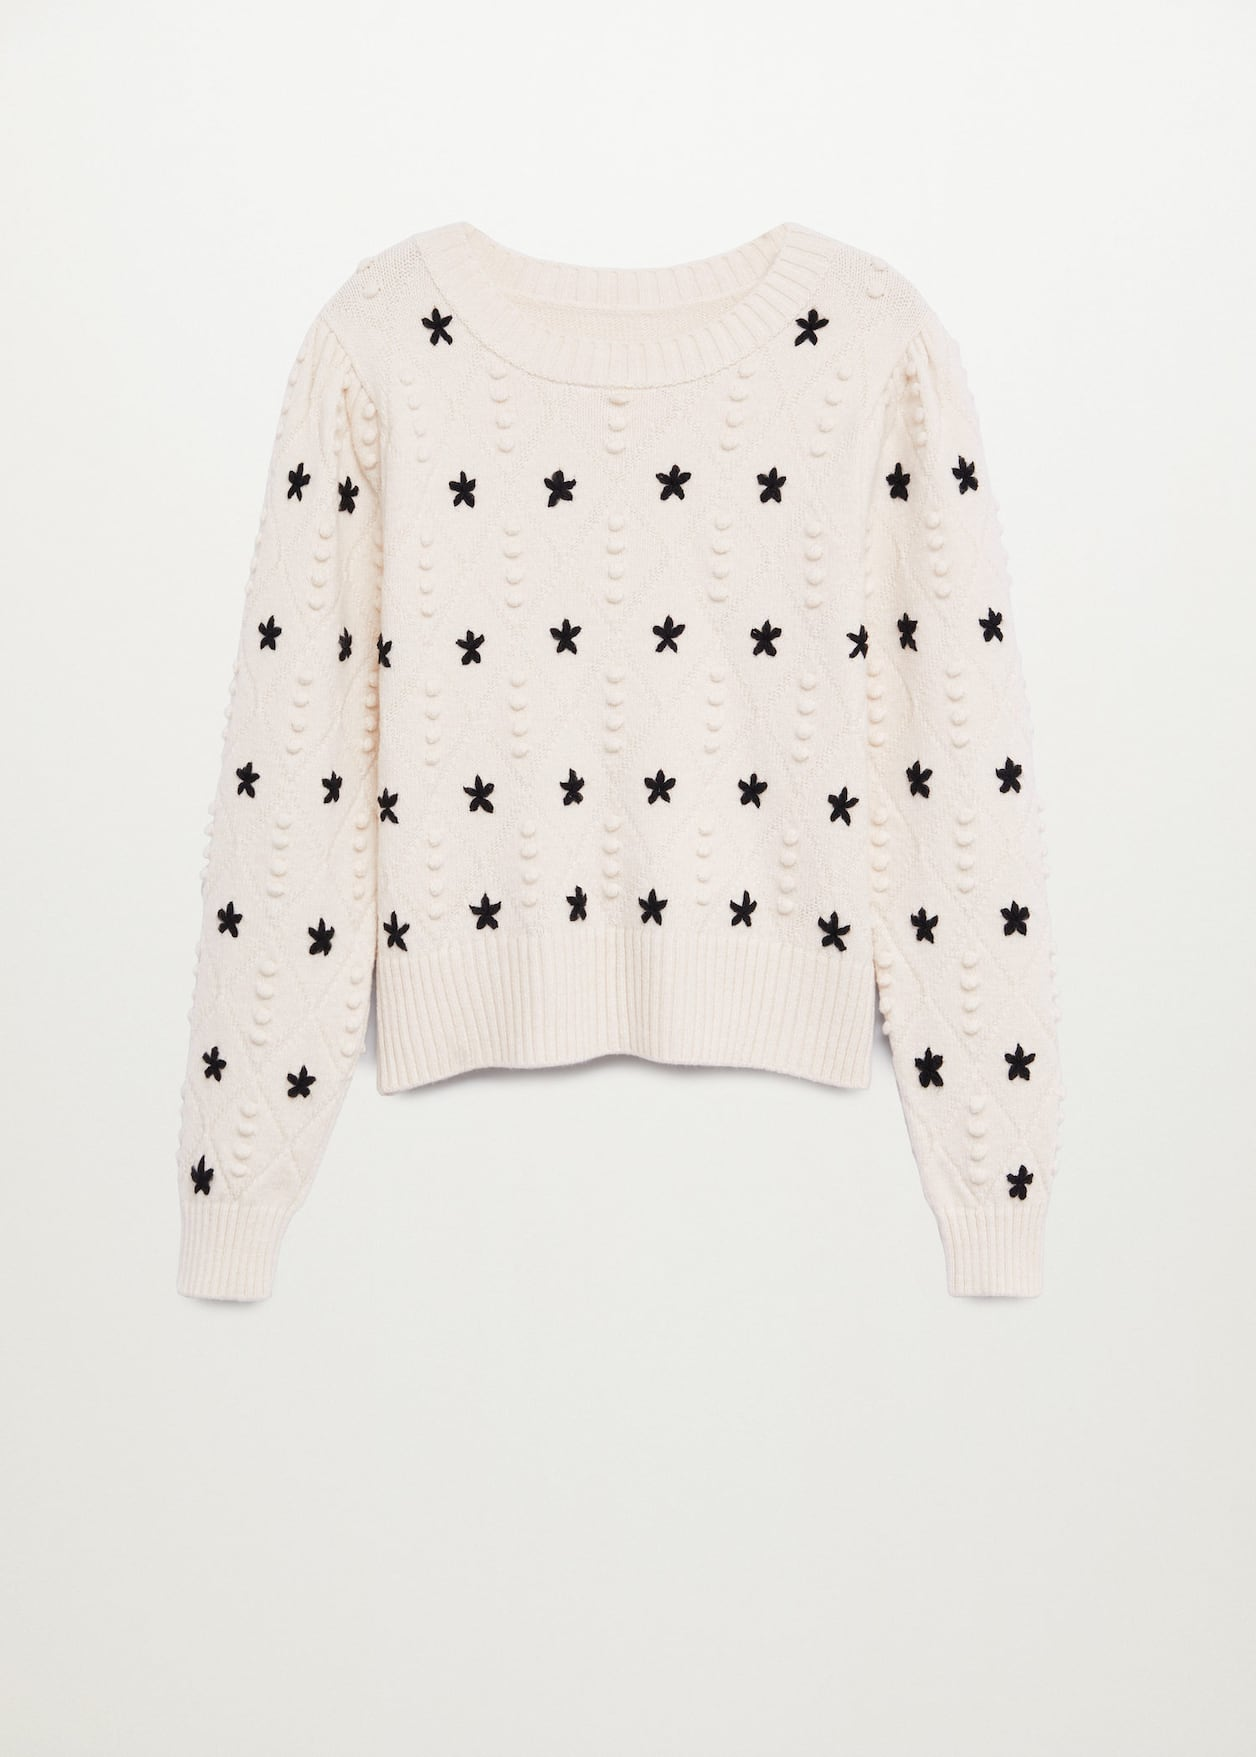 Stars knitted sweater - Article without model